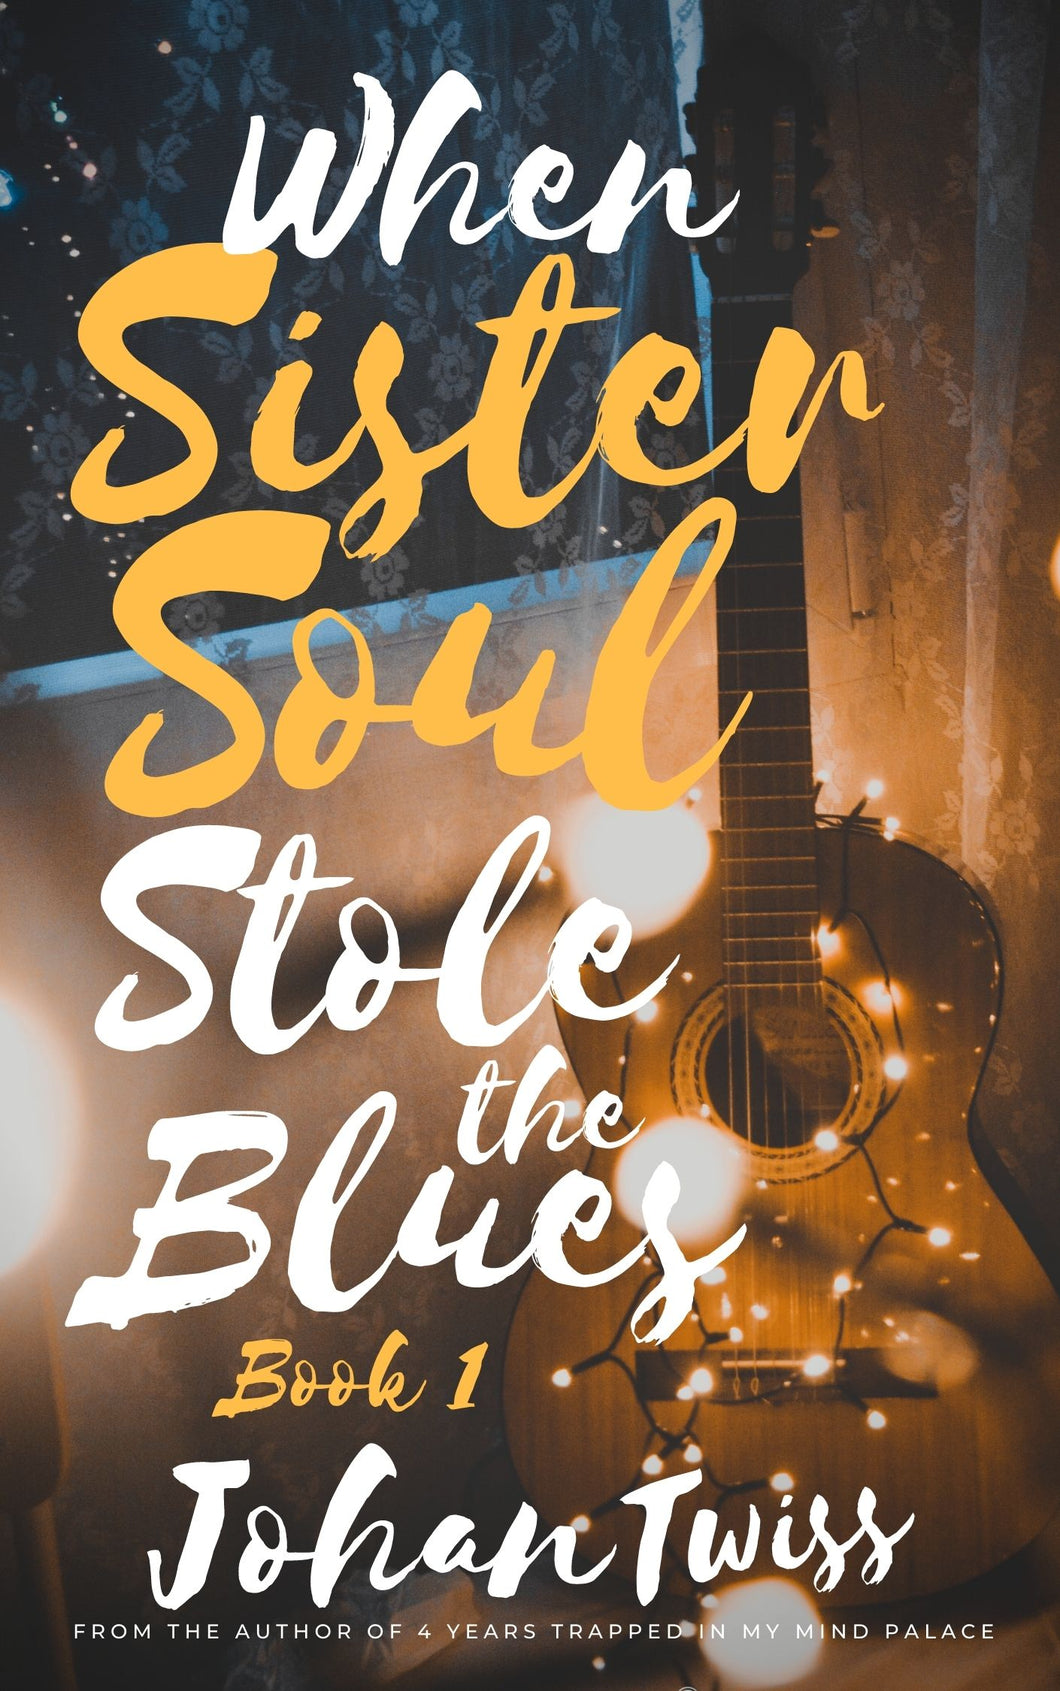 When Sister Soul Stole the Blues - Book 1 (Signed Paperback)